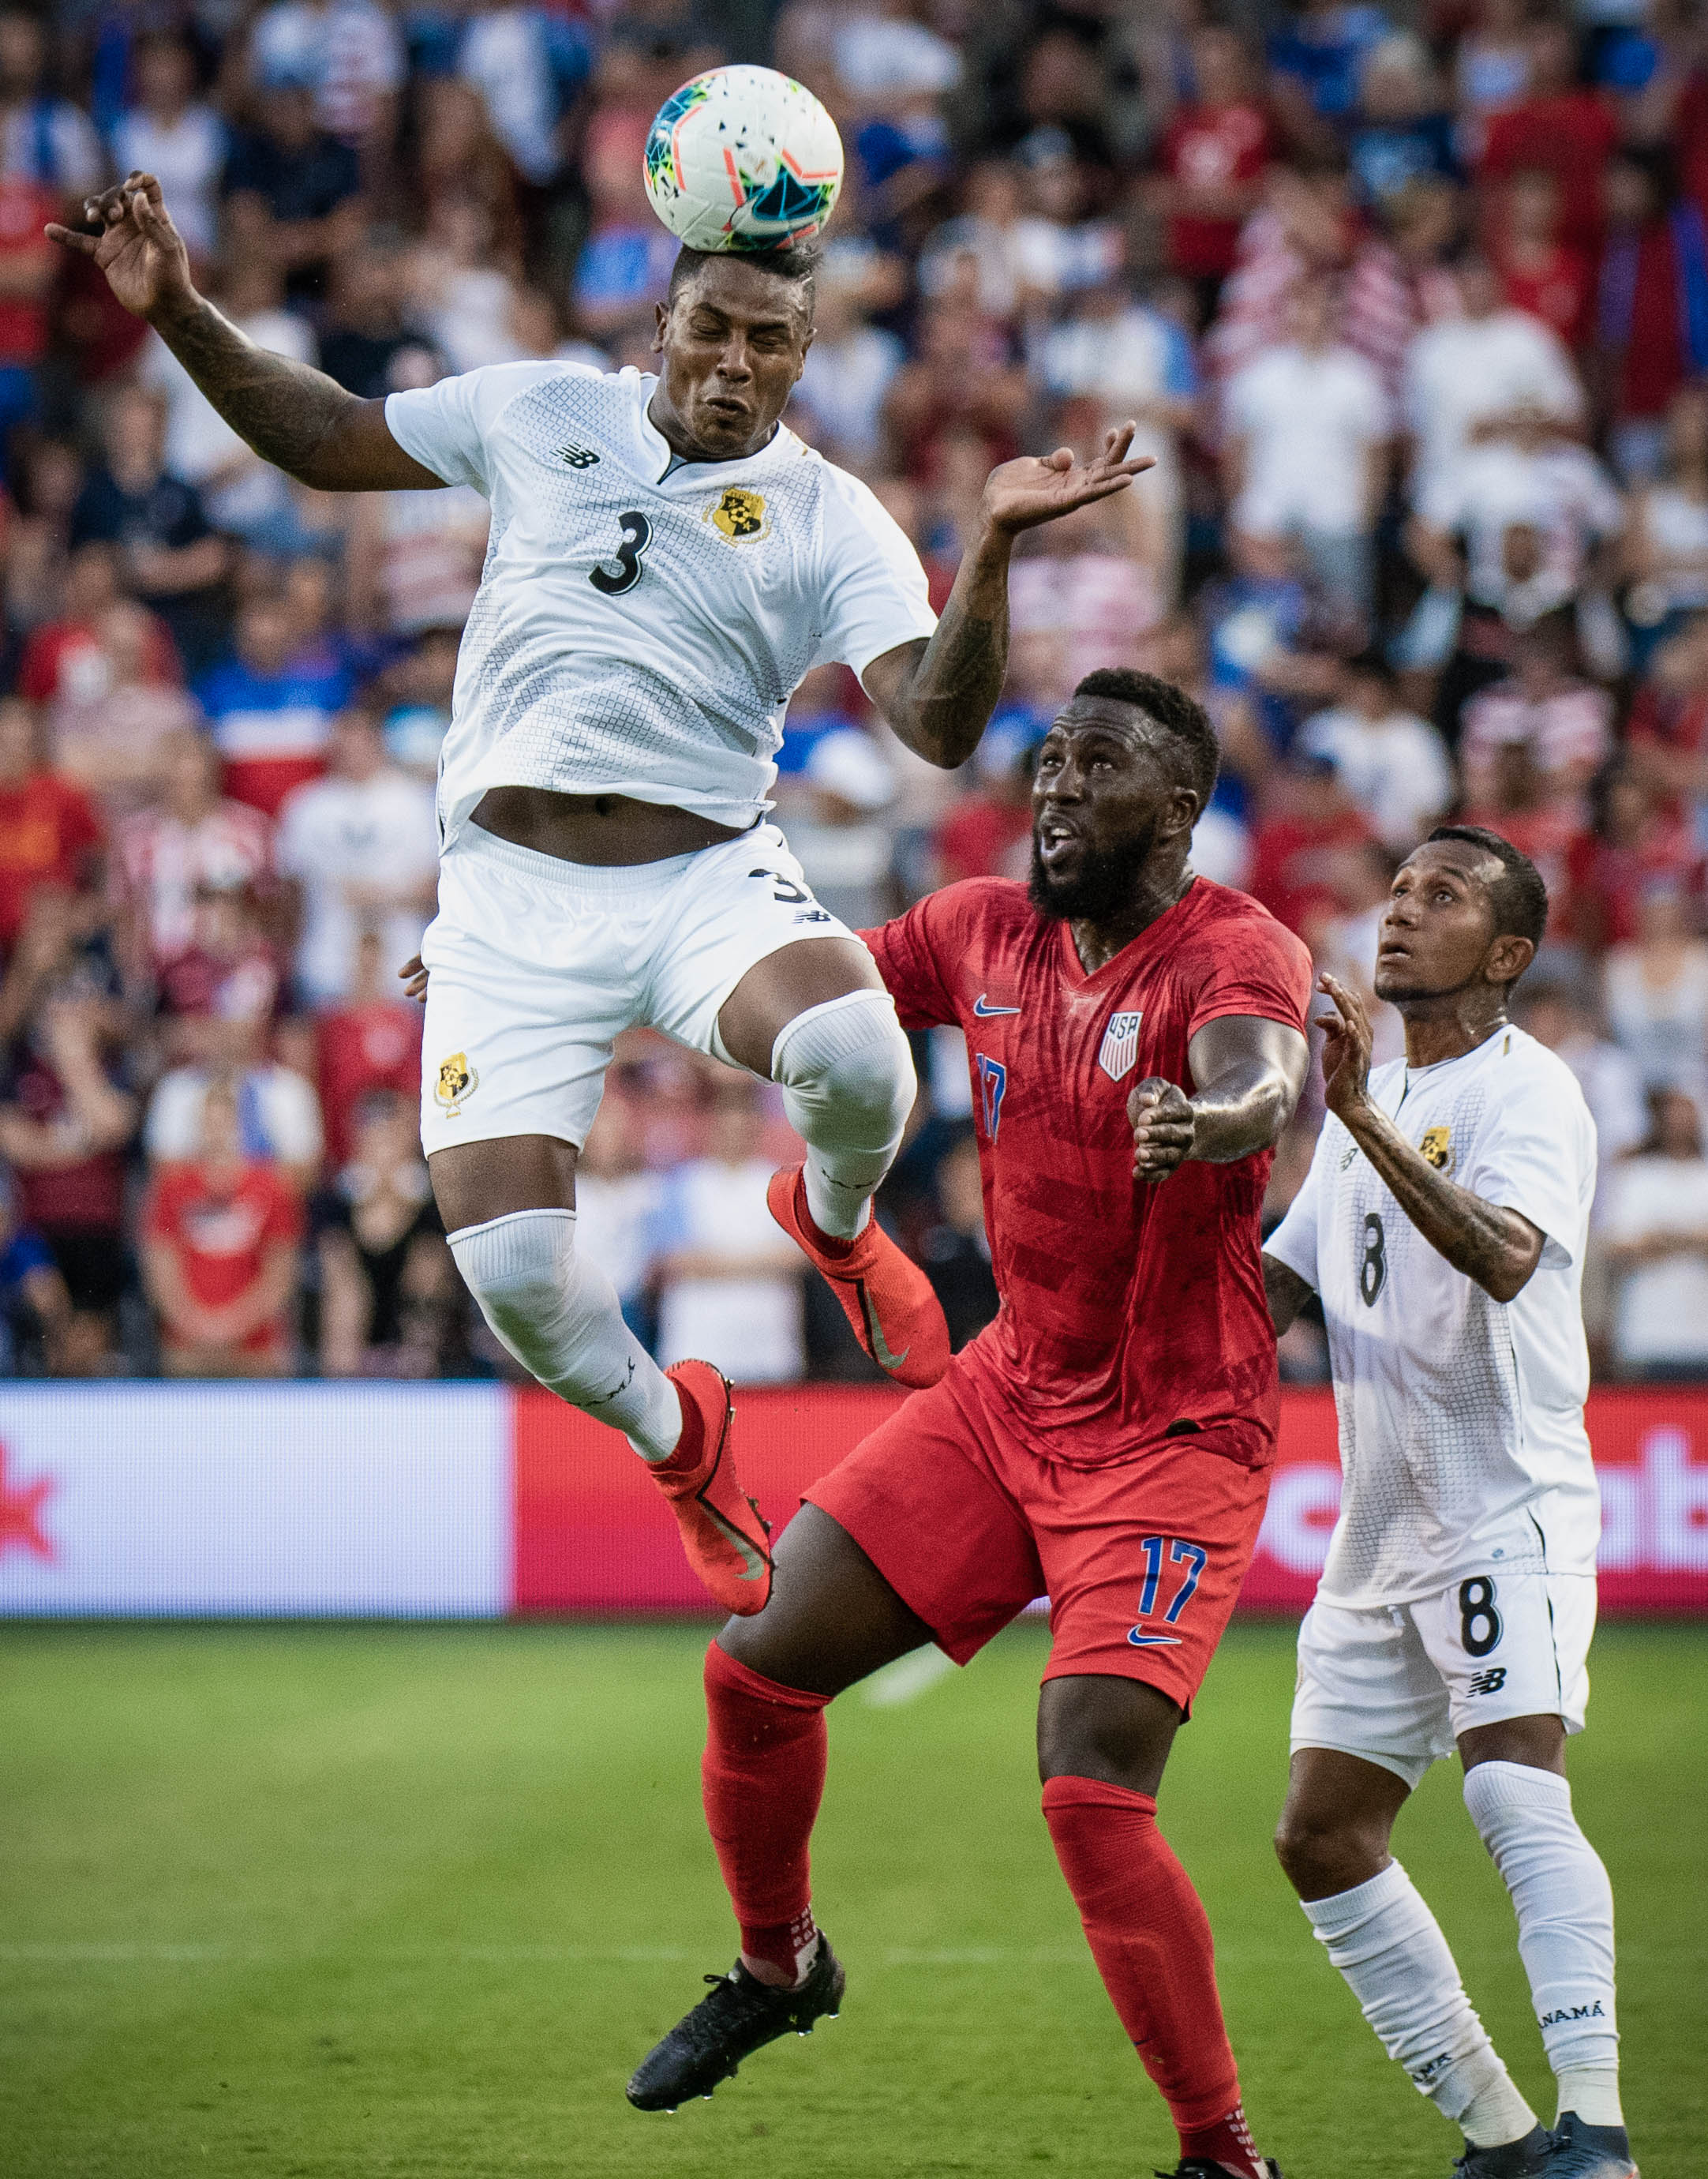 Harold Cummings (3) celebrates during the United States vs. Panama, Gold Cup match on Wednesday, June 26, 2019 at Children's Mercy Park in Kansas City, Kansas. The U.S. defeated Panama 1-0 with a bicycle kick goal scored by Jozy Altidore in the 66th' minute.